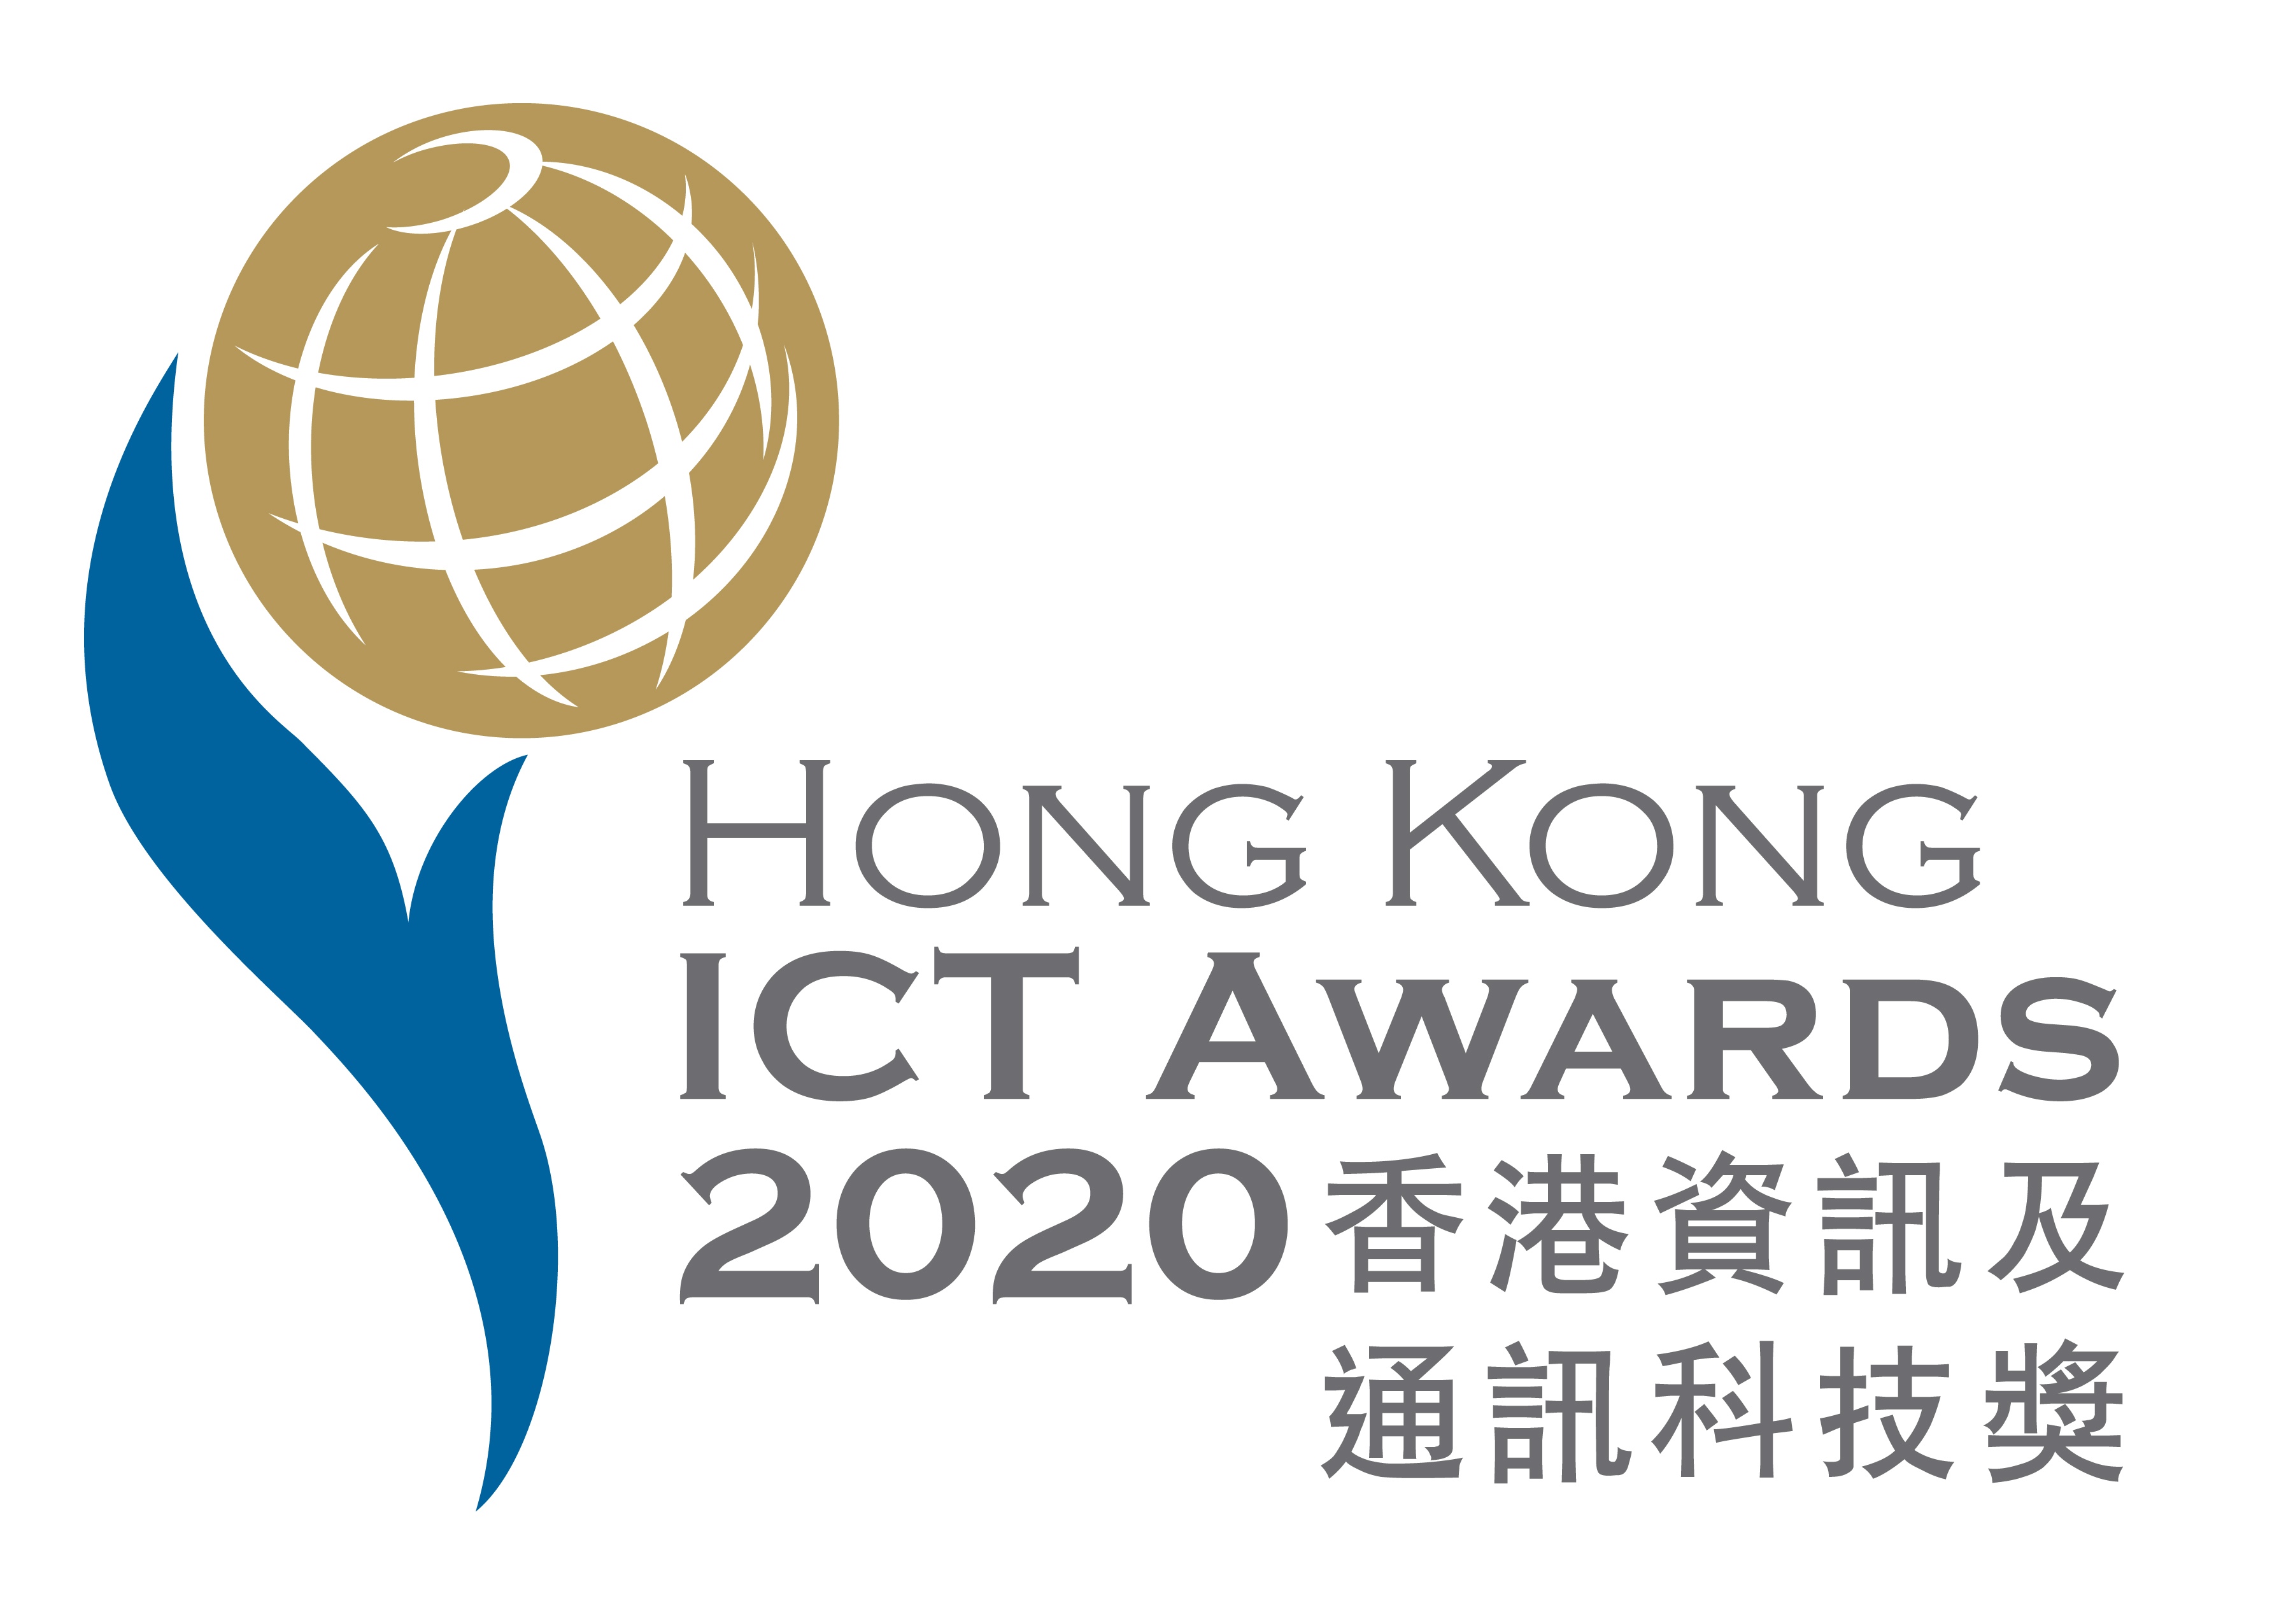 The Hong Kong ICT Awards 2020